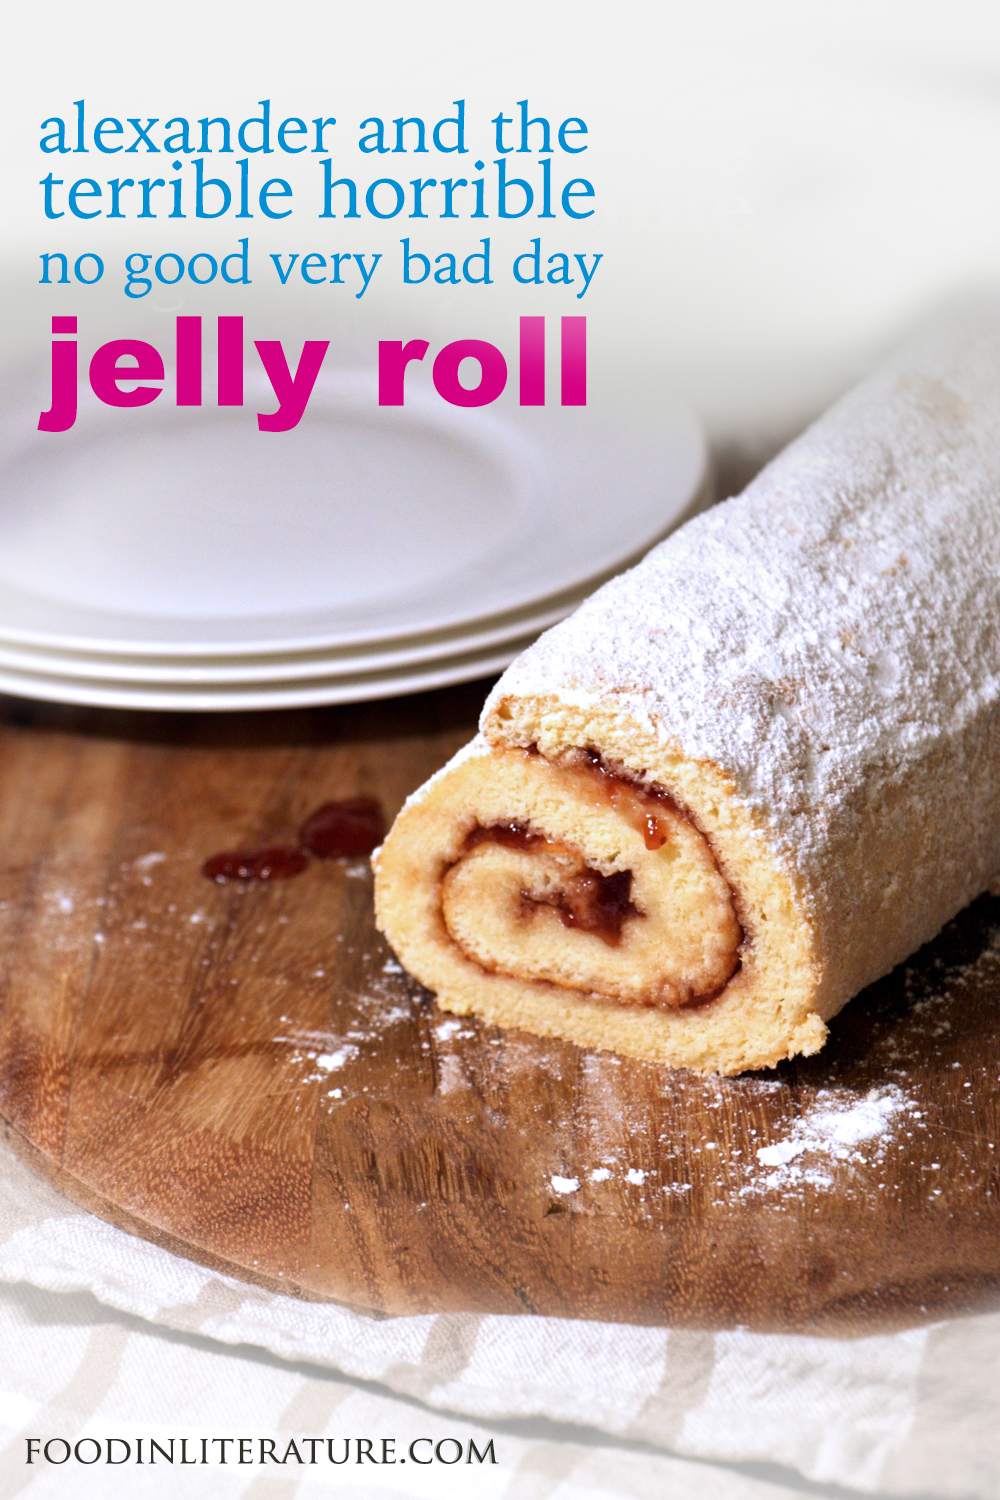 Jelly Roll | Alexander and the Horrible, Terrible, No Good Day